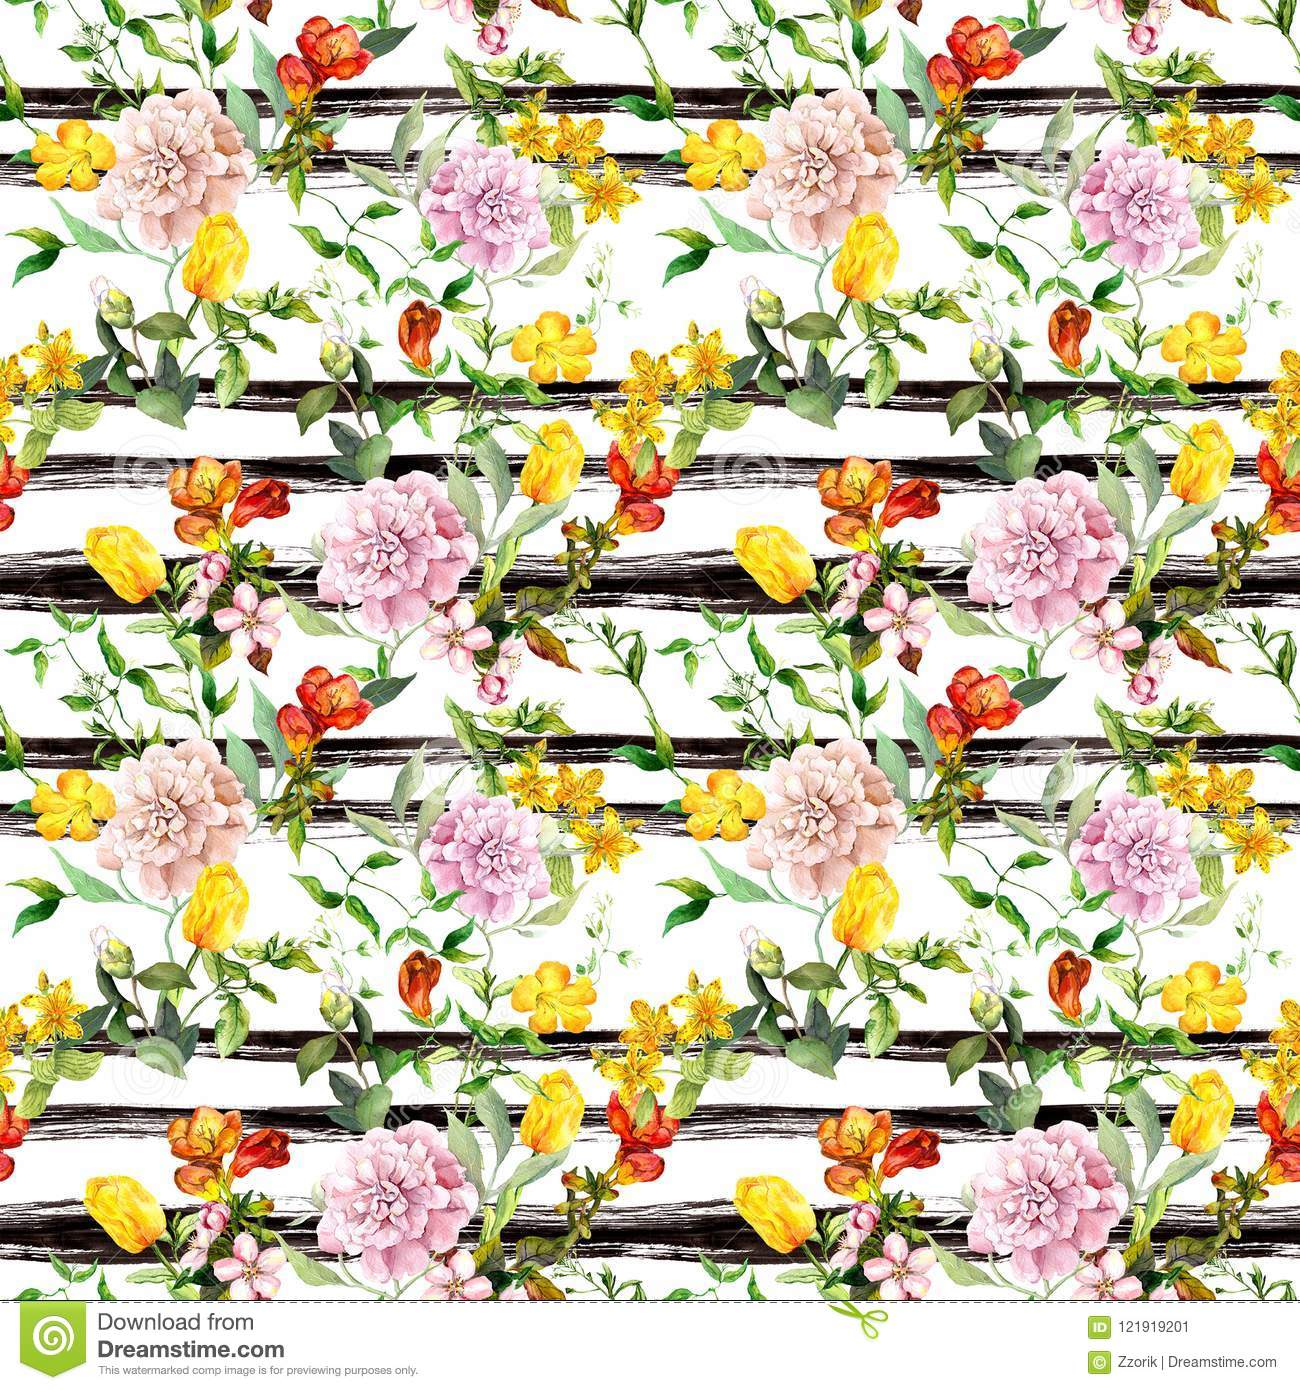 Flowers at black-white striped background. Repeating floral background. Watercolor with ink stripes